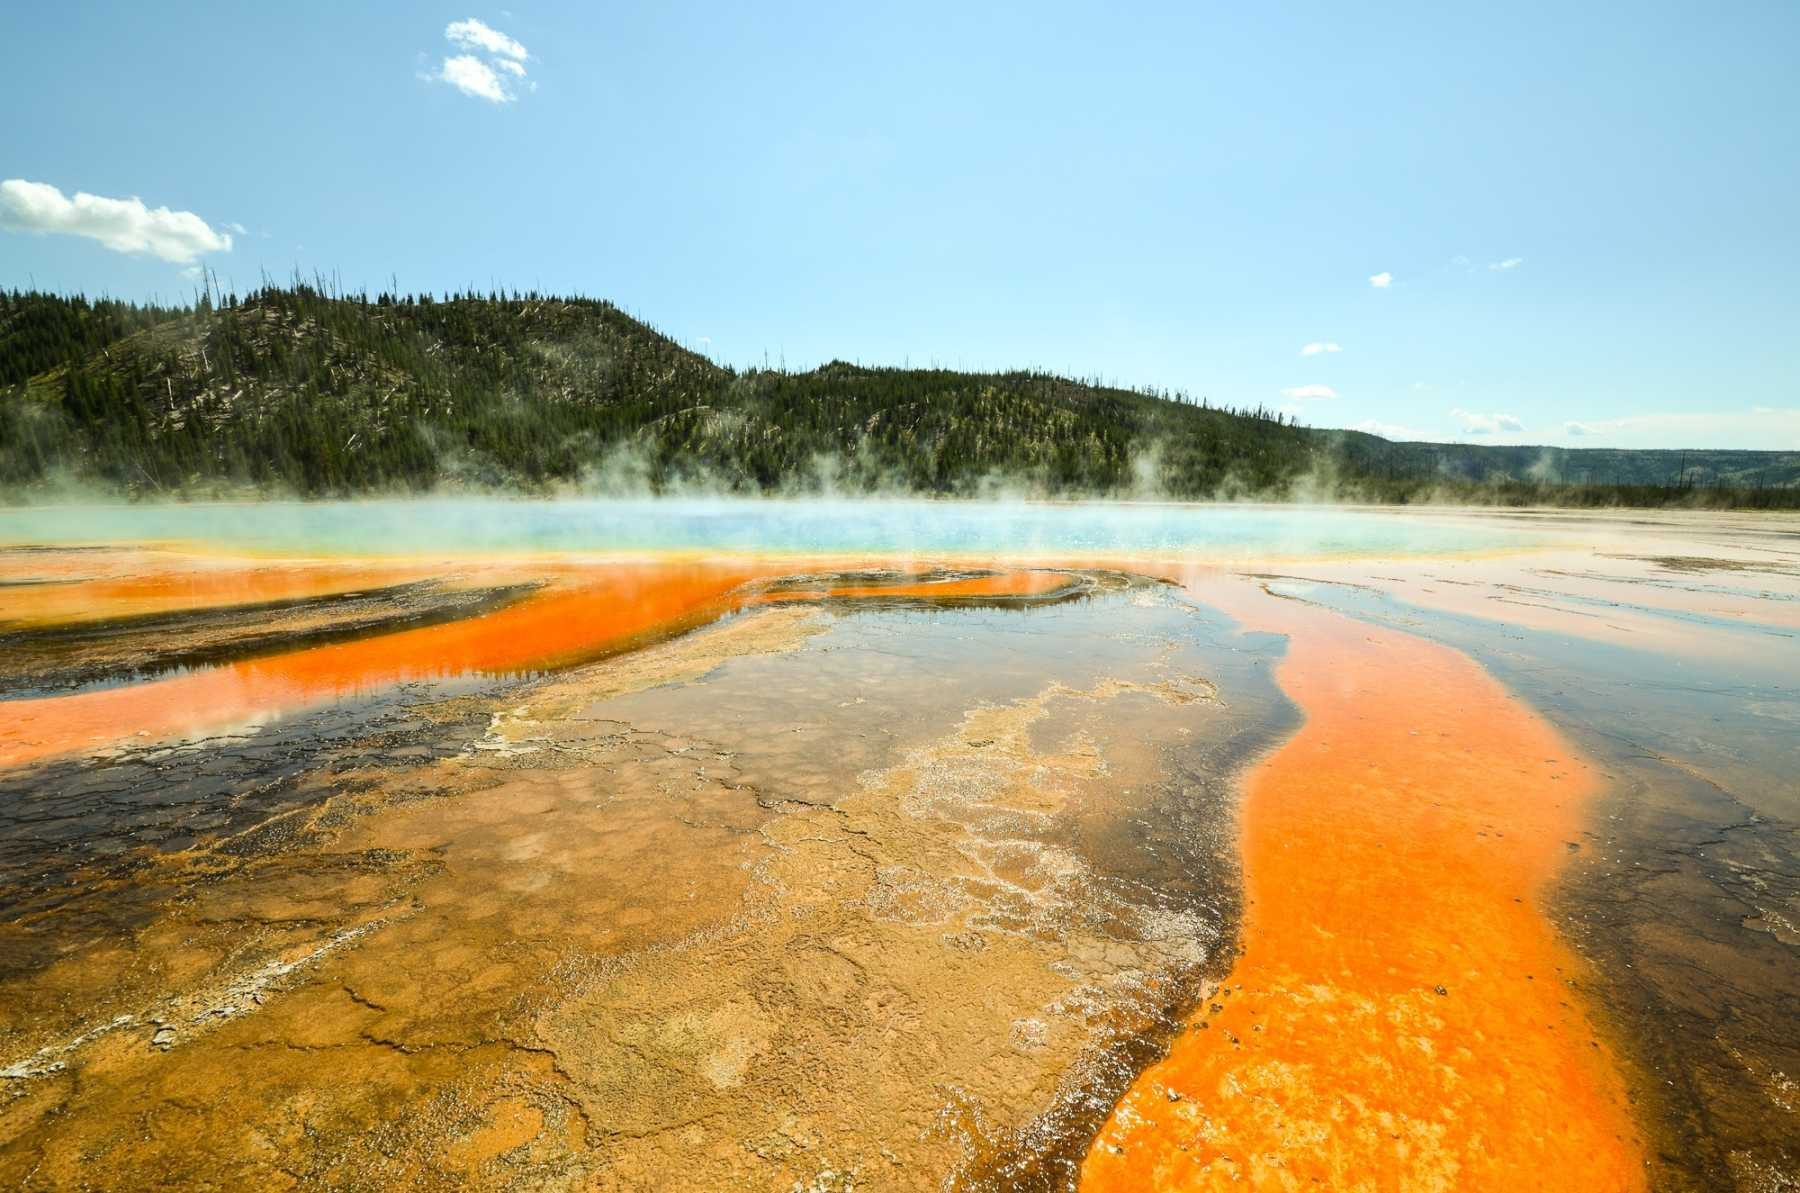 Geothermal Hot Spring in Yellowstone National Park